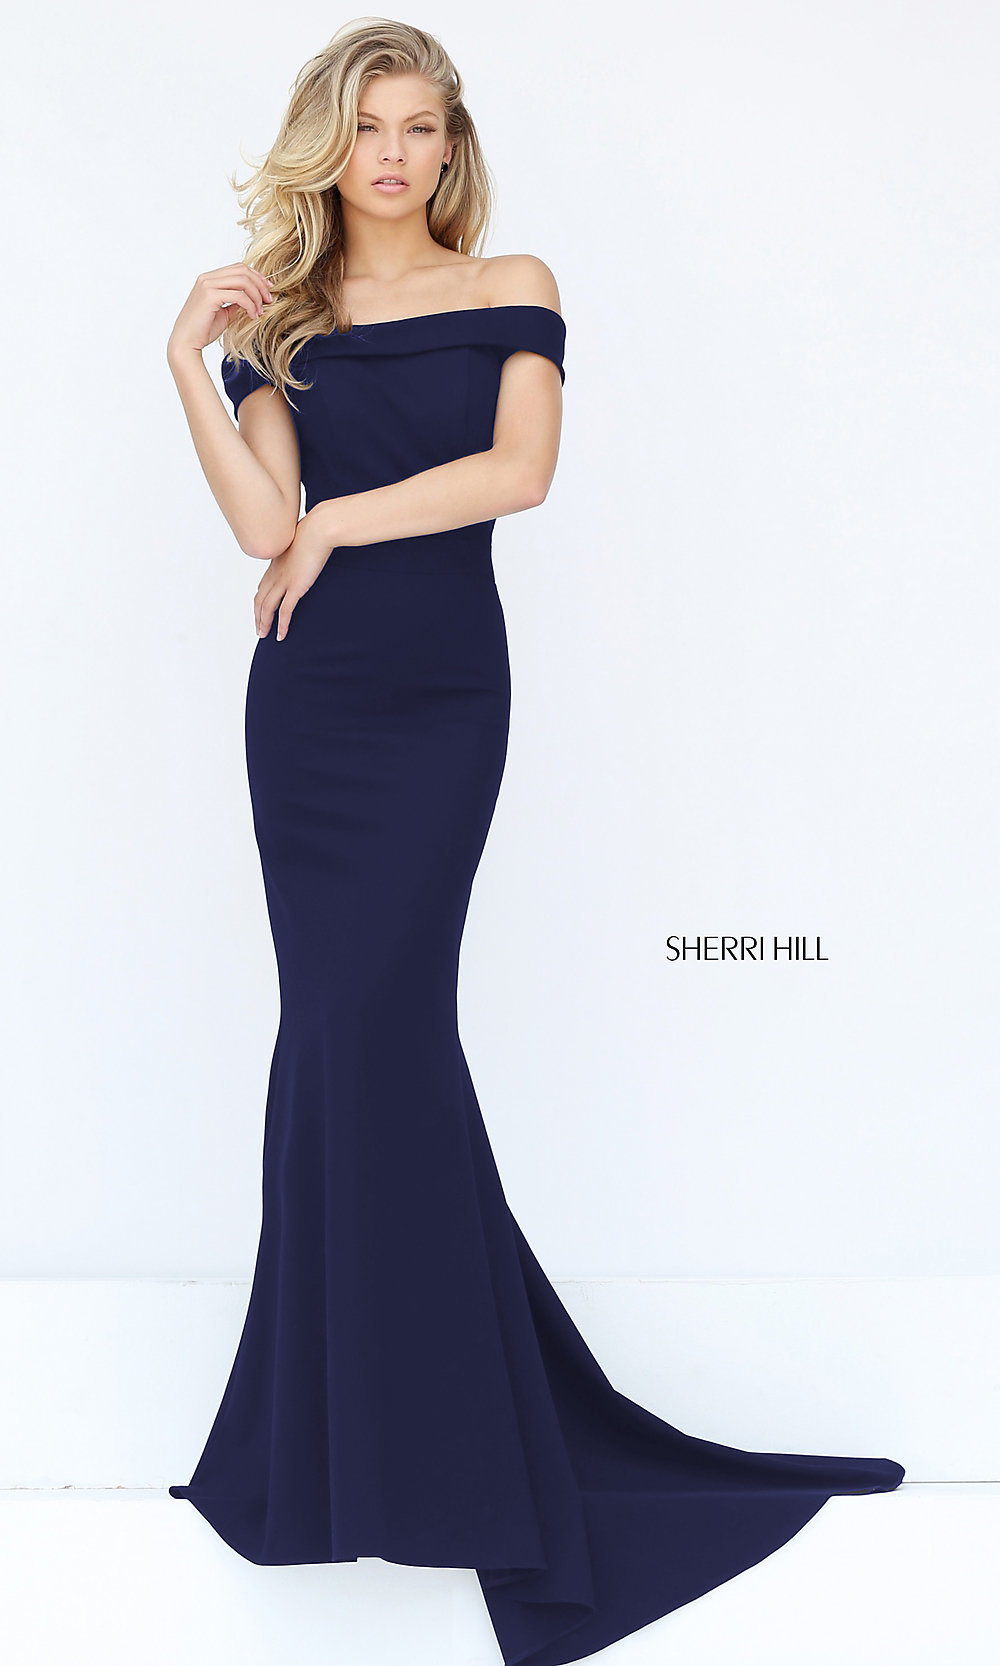 Sleek Evening Gowns Sexy Prom Dresses Promgirl